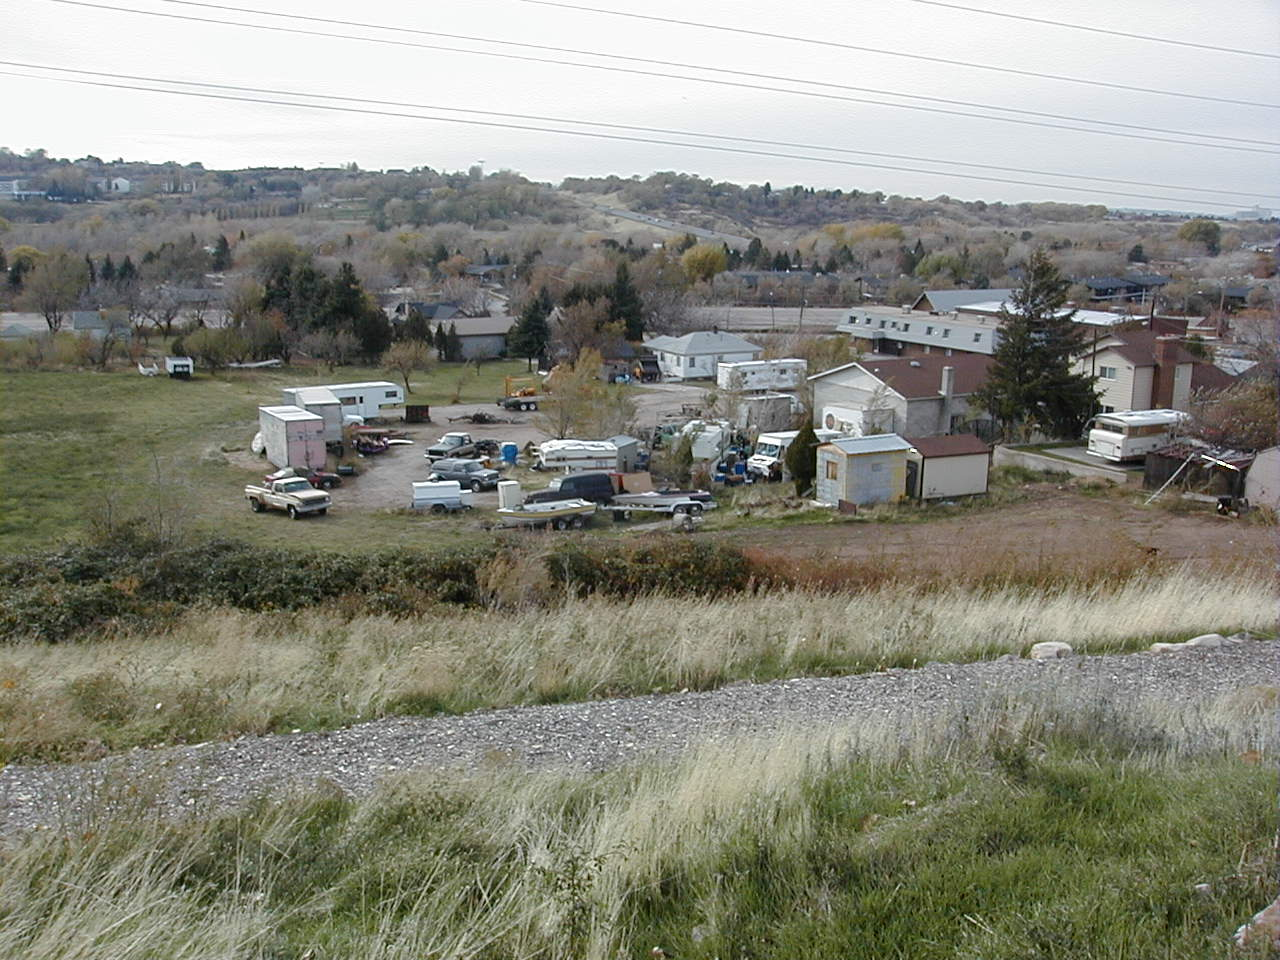 A vacant lot filled with old cars and trailers surrounded by tall grass.